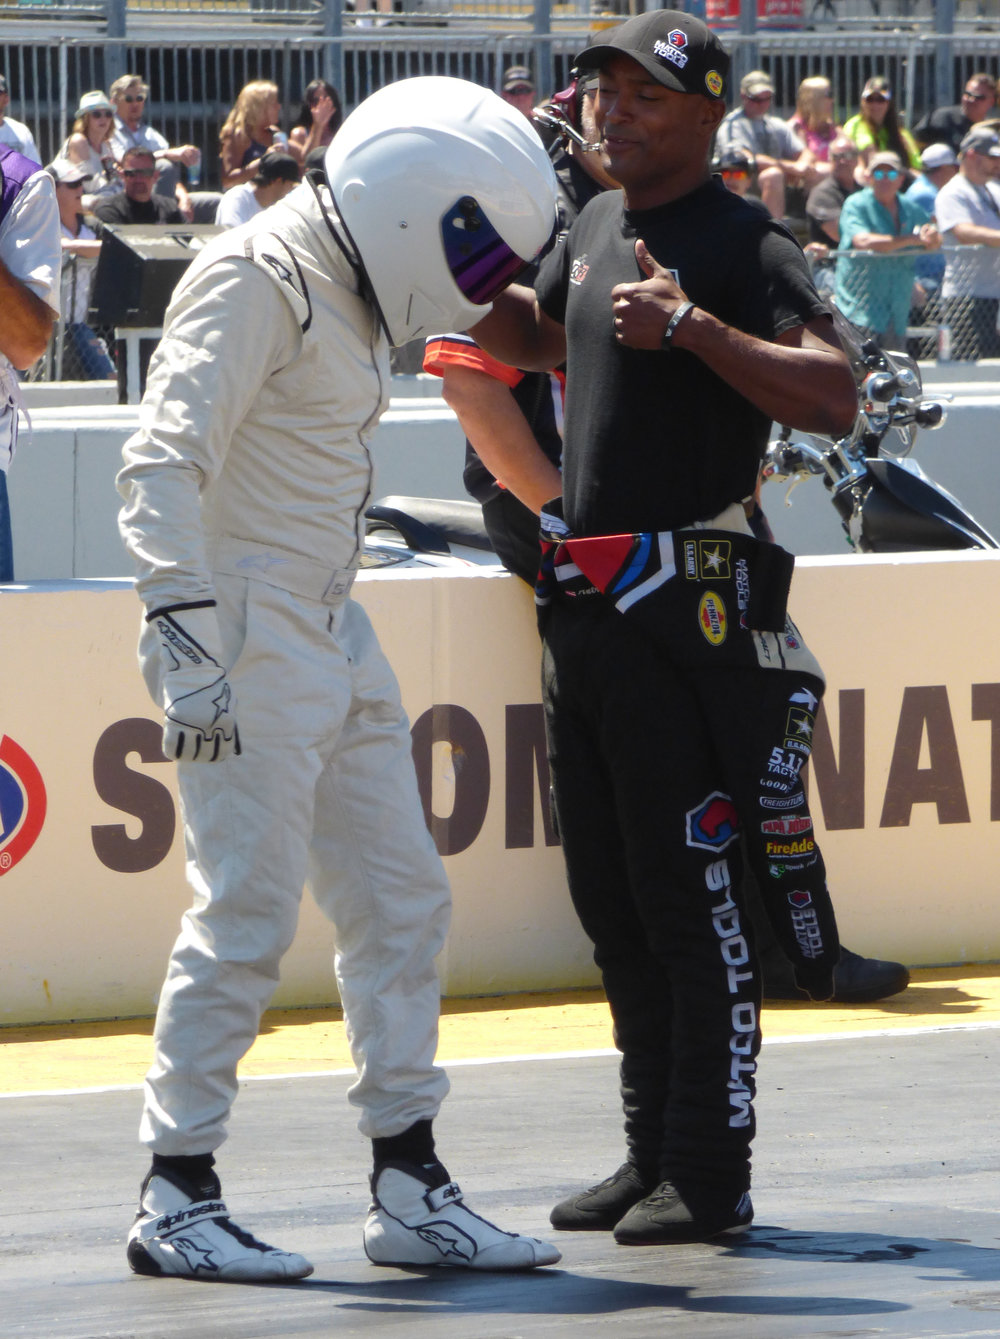 The Top Gear's The Stig checks the grip level with guidance from 3 time Top Fuel Champion Antron Brown